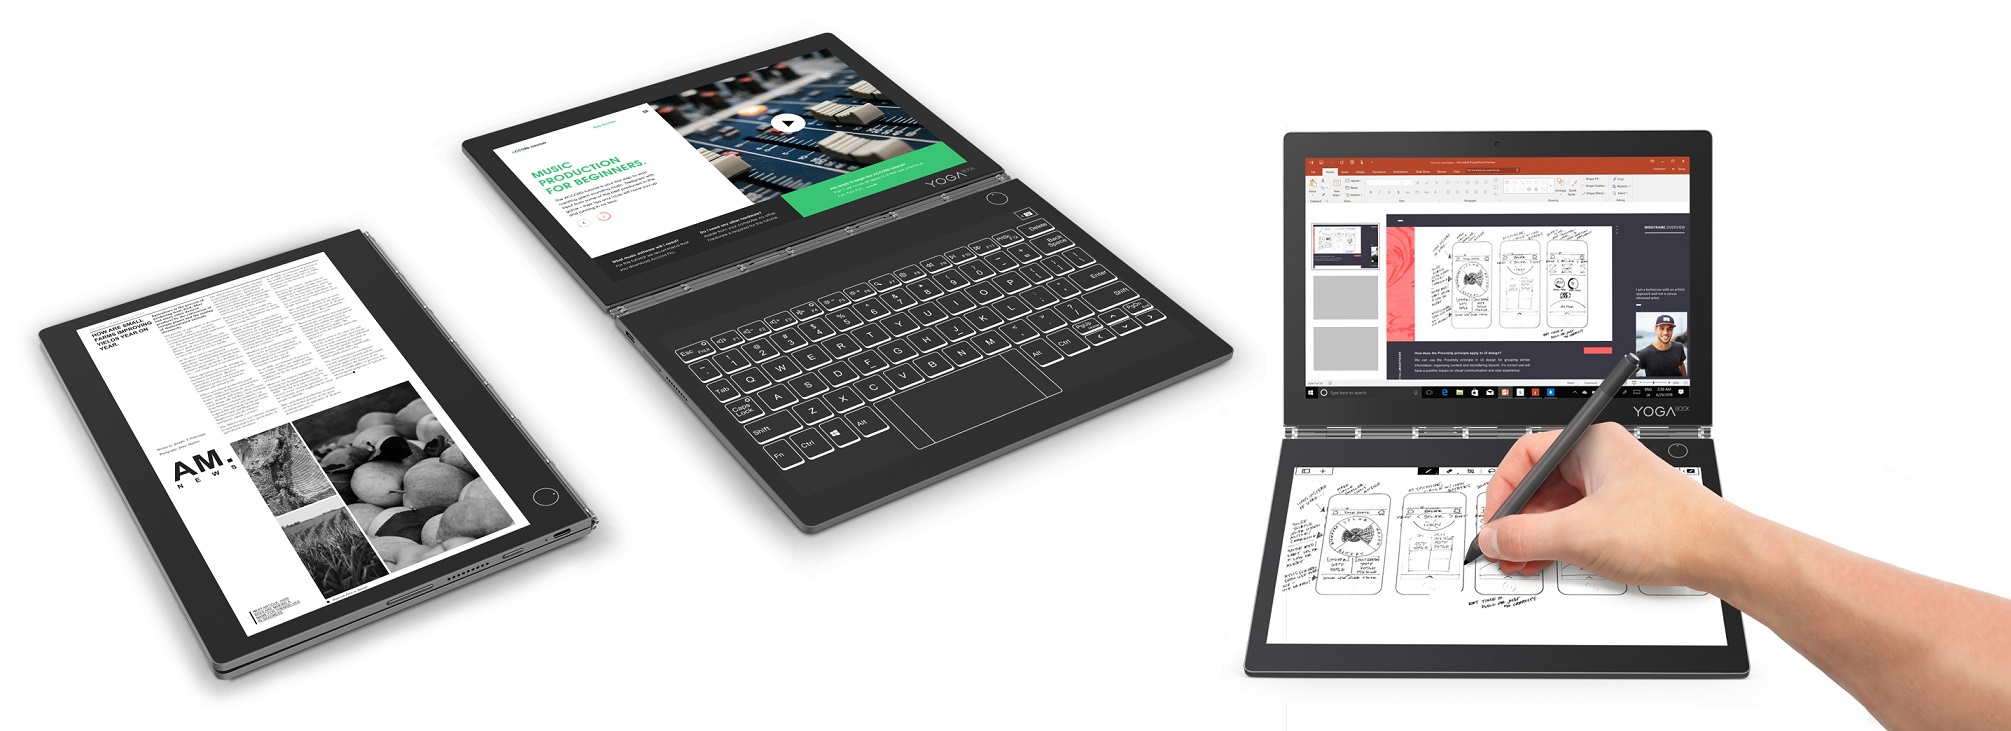 Lenovo Yoga Book C930 (2)